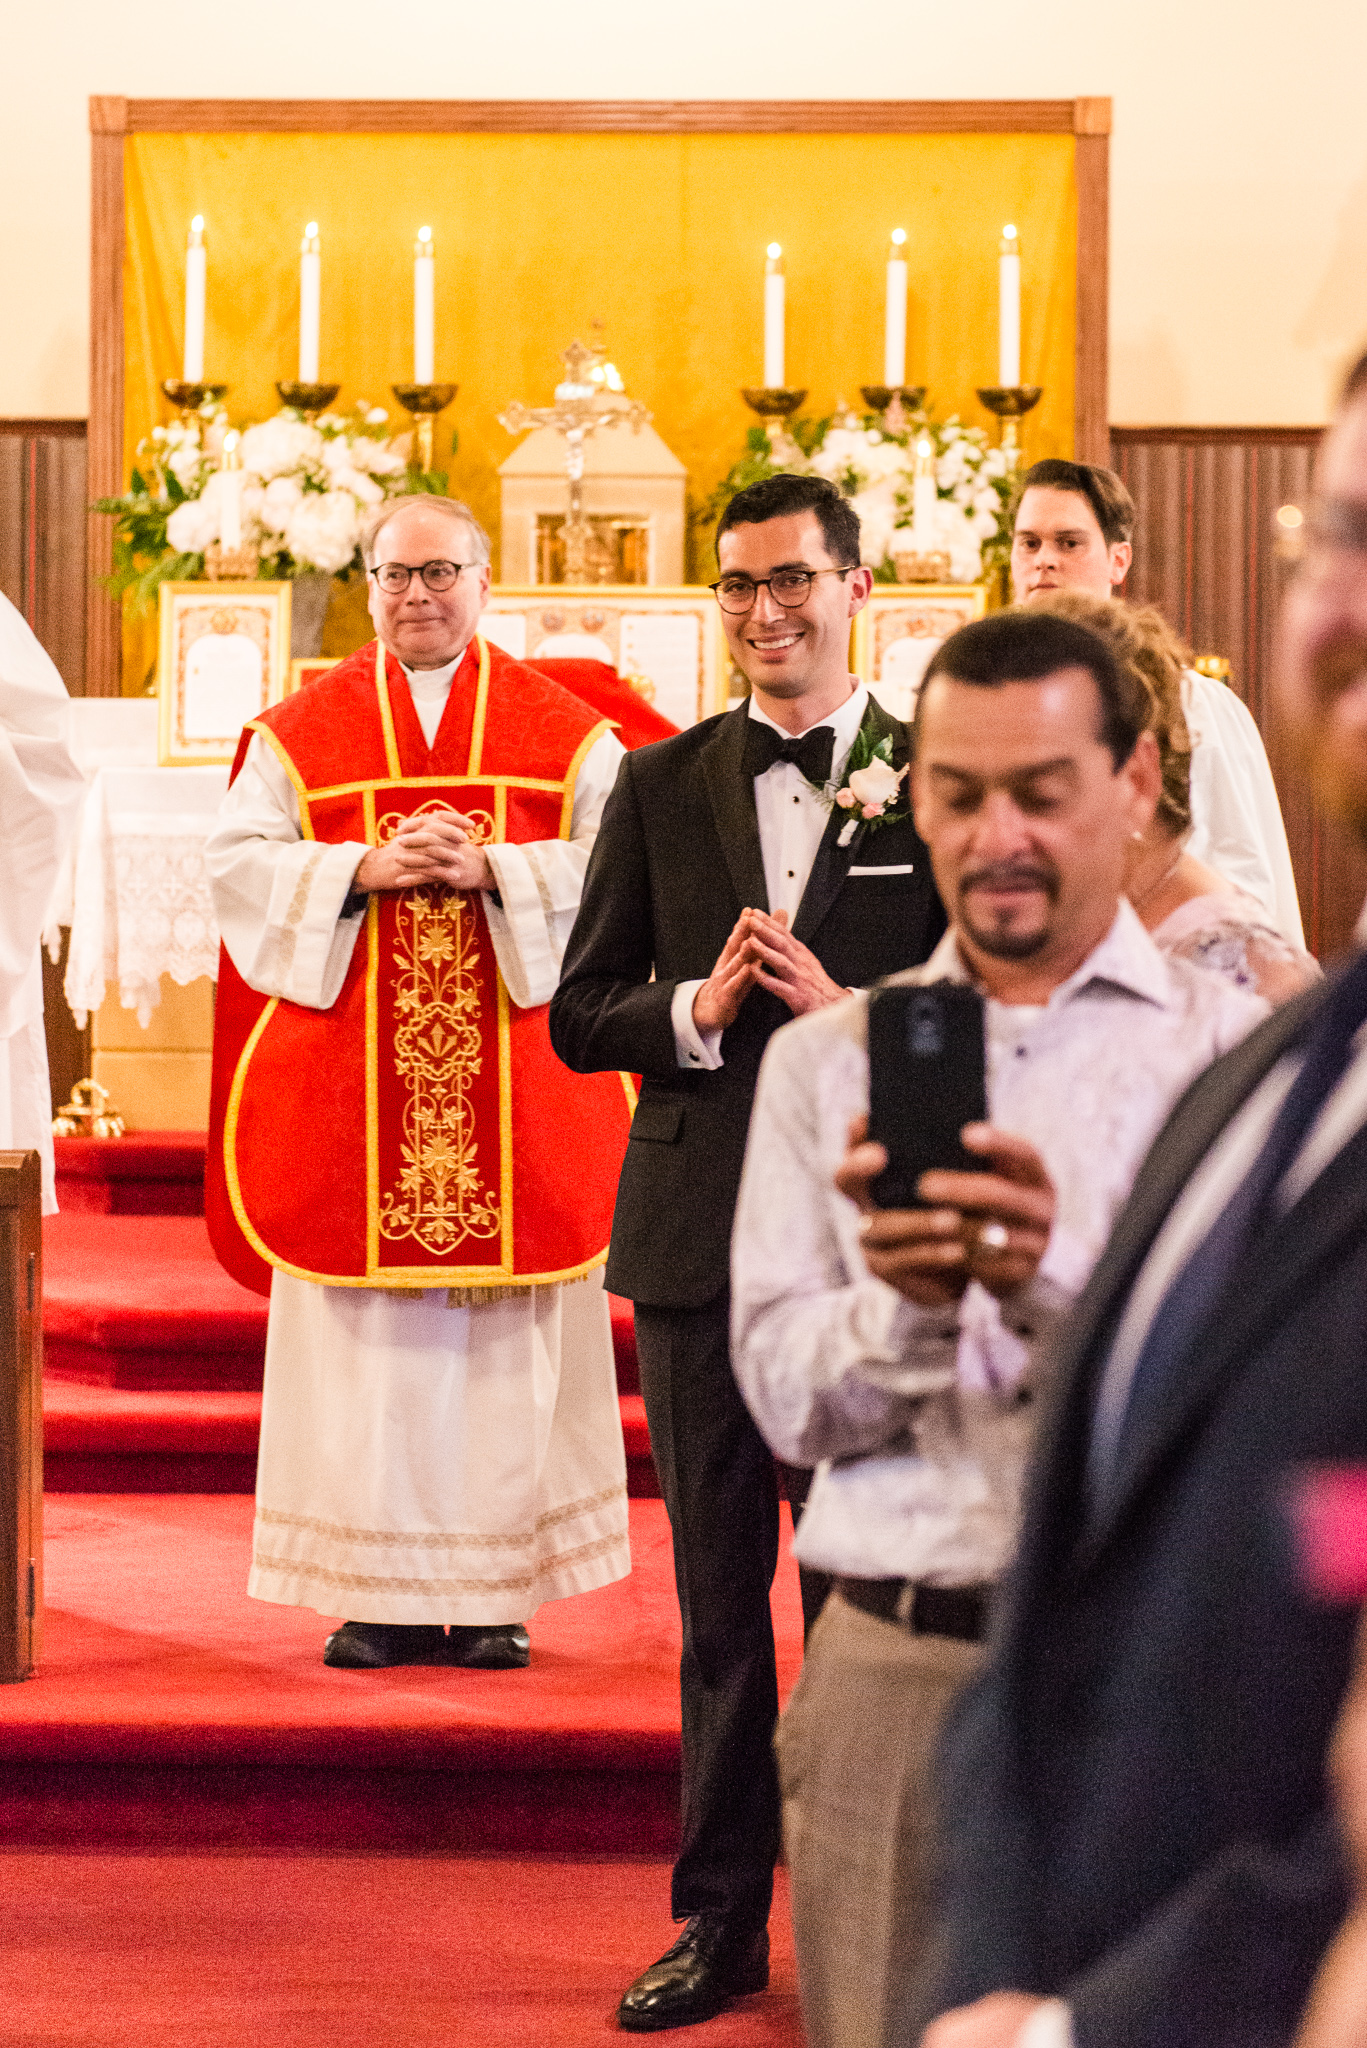 A groom looking up the aisle at his bride for the first time on their wedding day during a Catholic wedding ceremony at the Chapel of Immaculate Conception in Leesburg, Northern Virginia